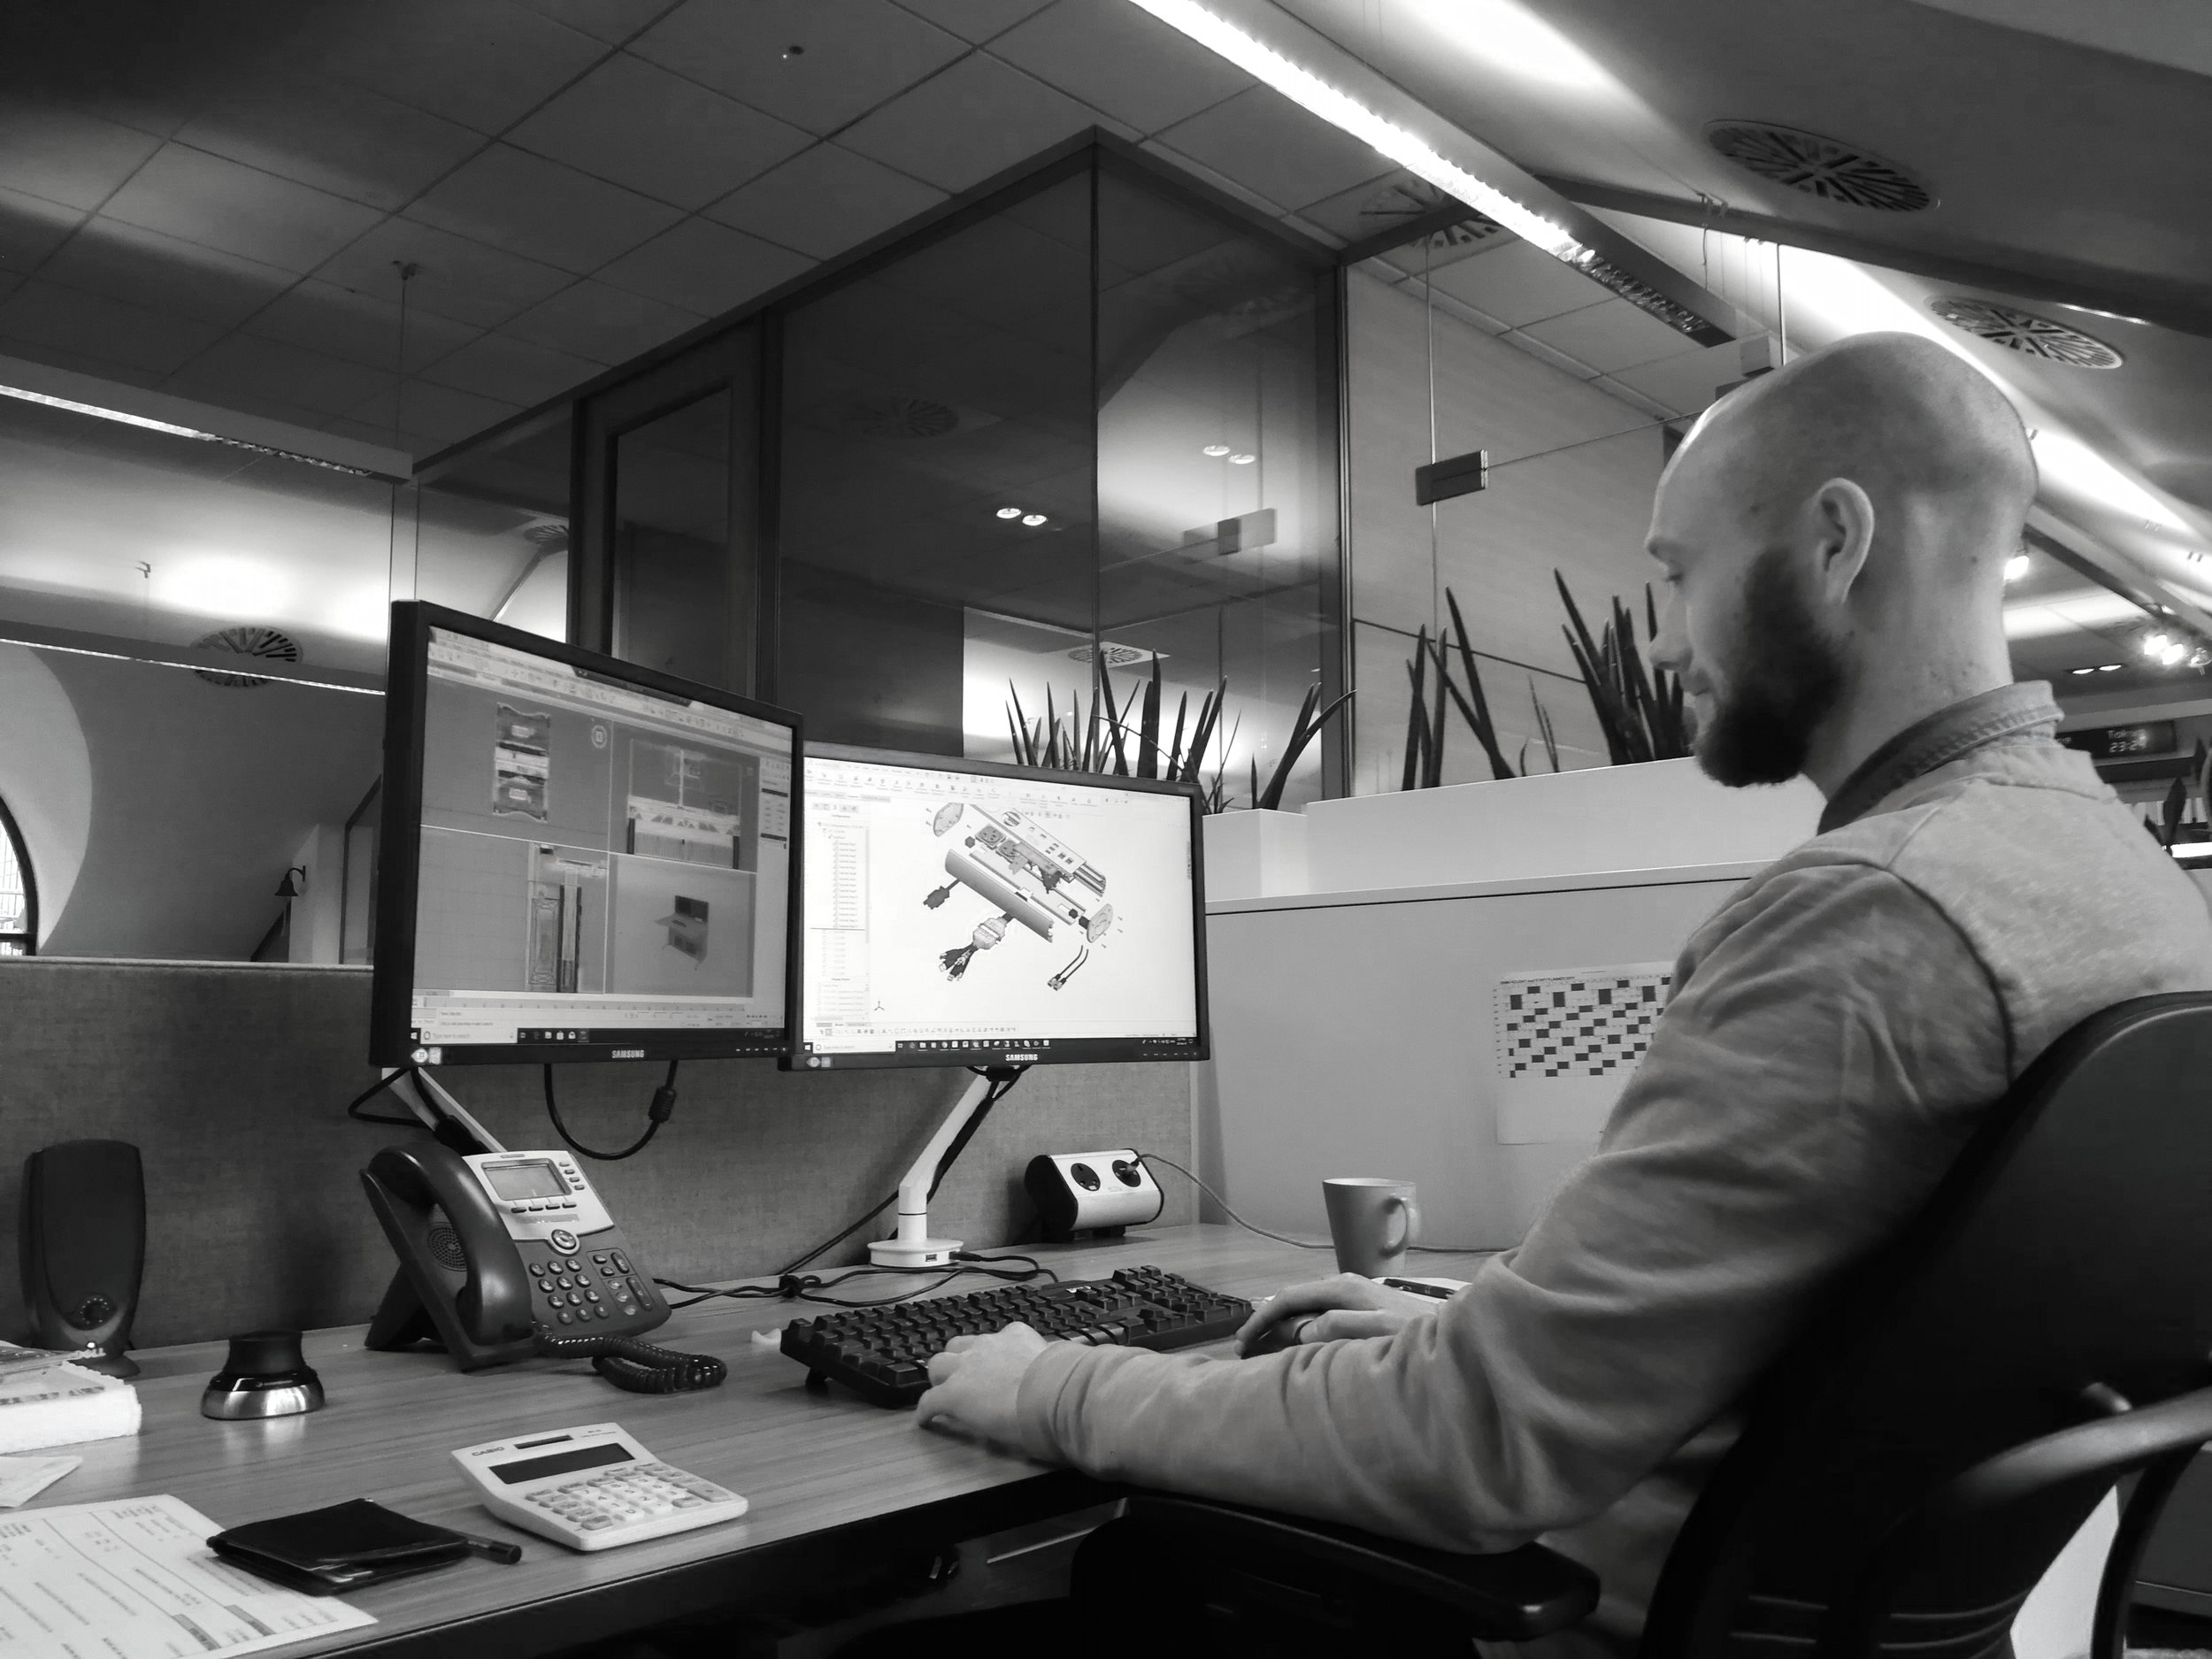 design - To maintain our market lead, our in-house design team innovate and create solutions on a project-by-project basis. We may utilise our established product range or develop a more custom solution, dependent on the project requirements.